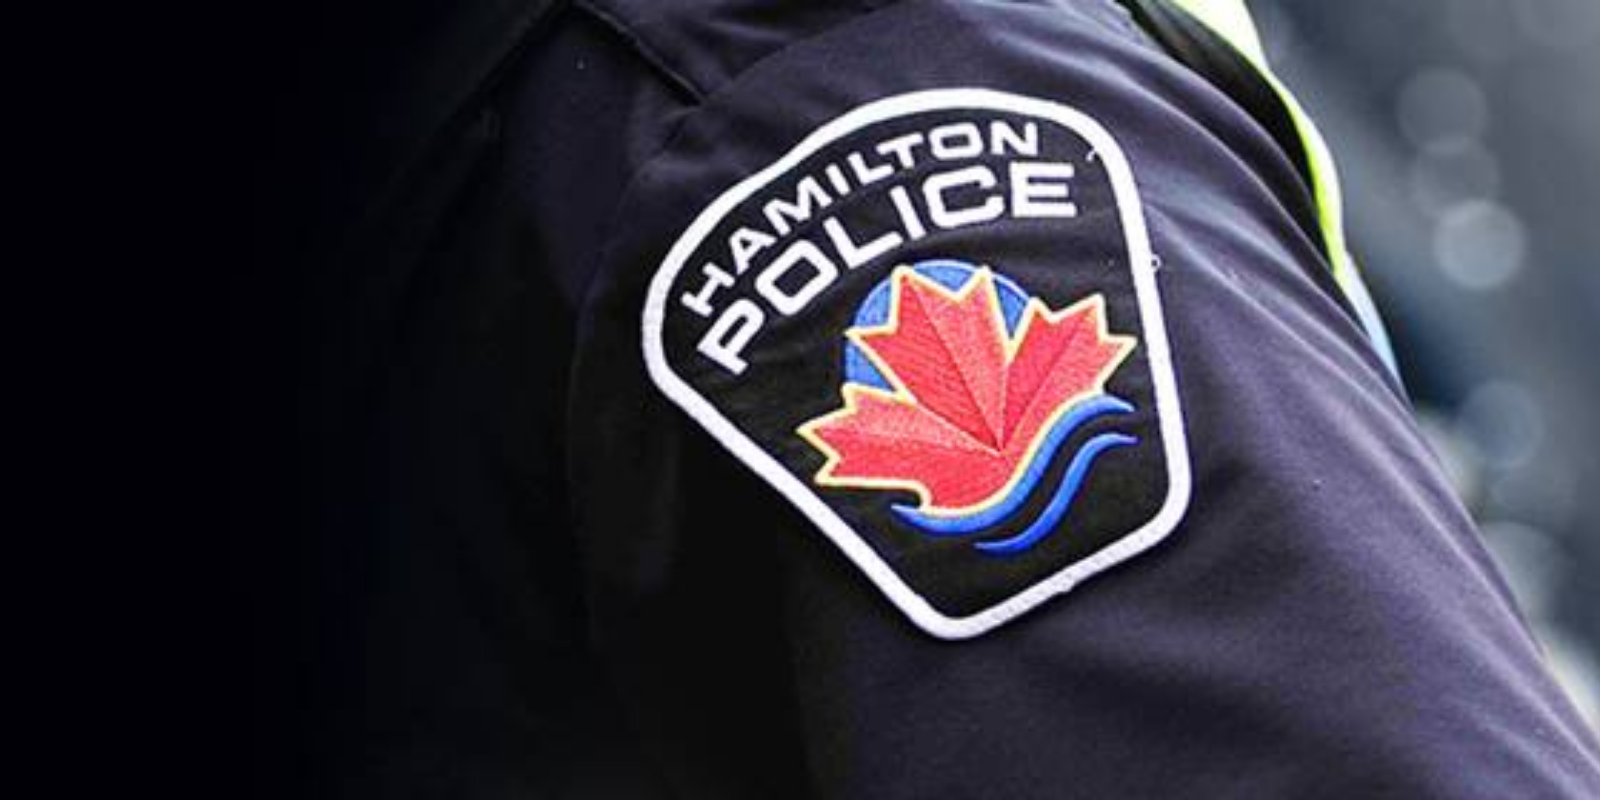 Hamilton Police charge 3 anti-lockdown protestors in front of city hall